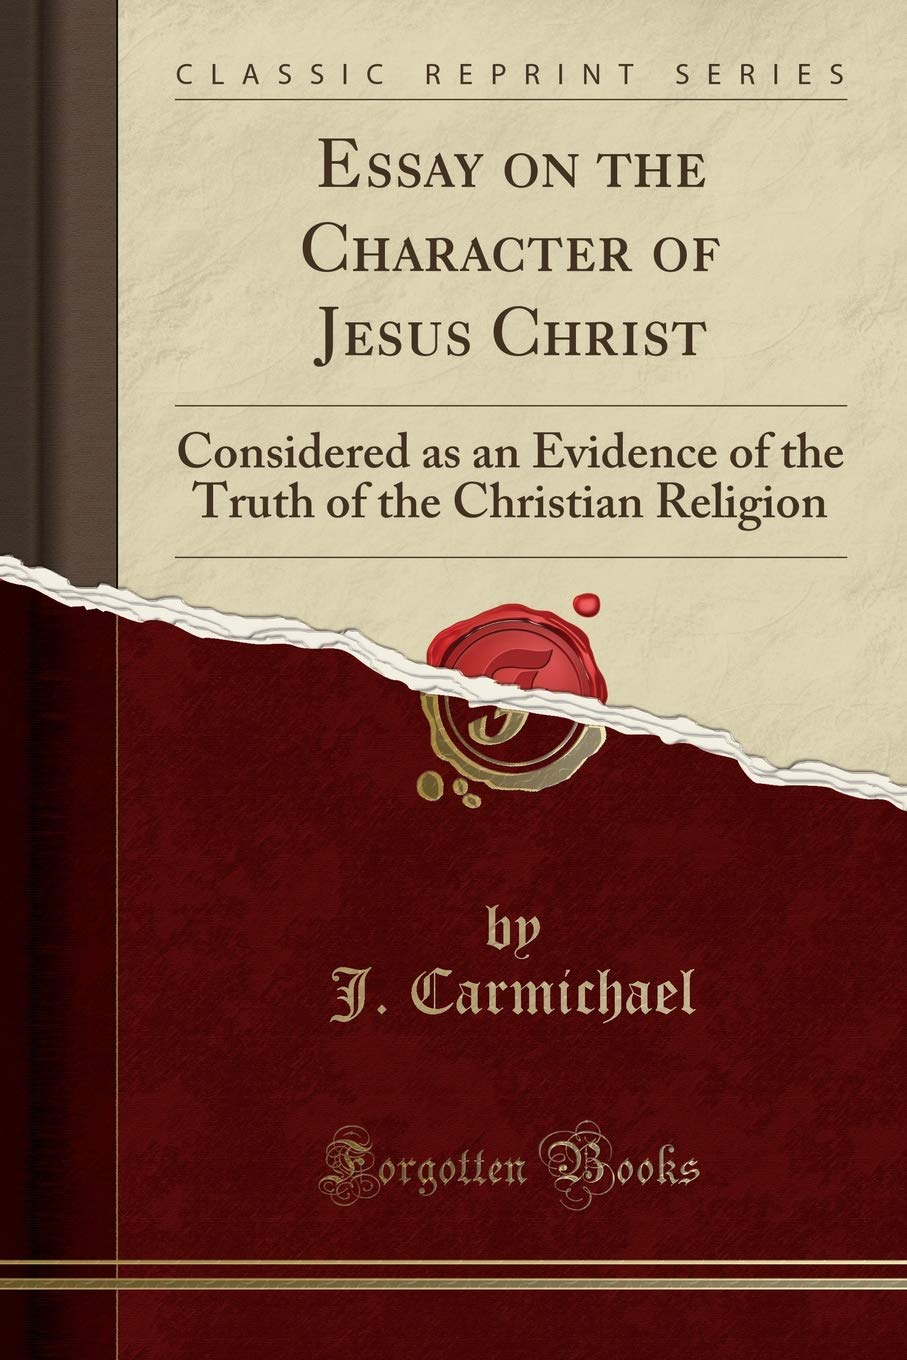 Essays On The Truth Of The Christian Religion